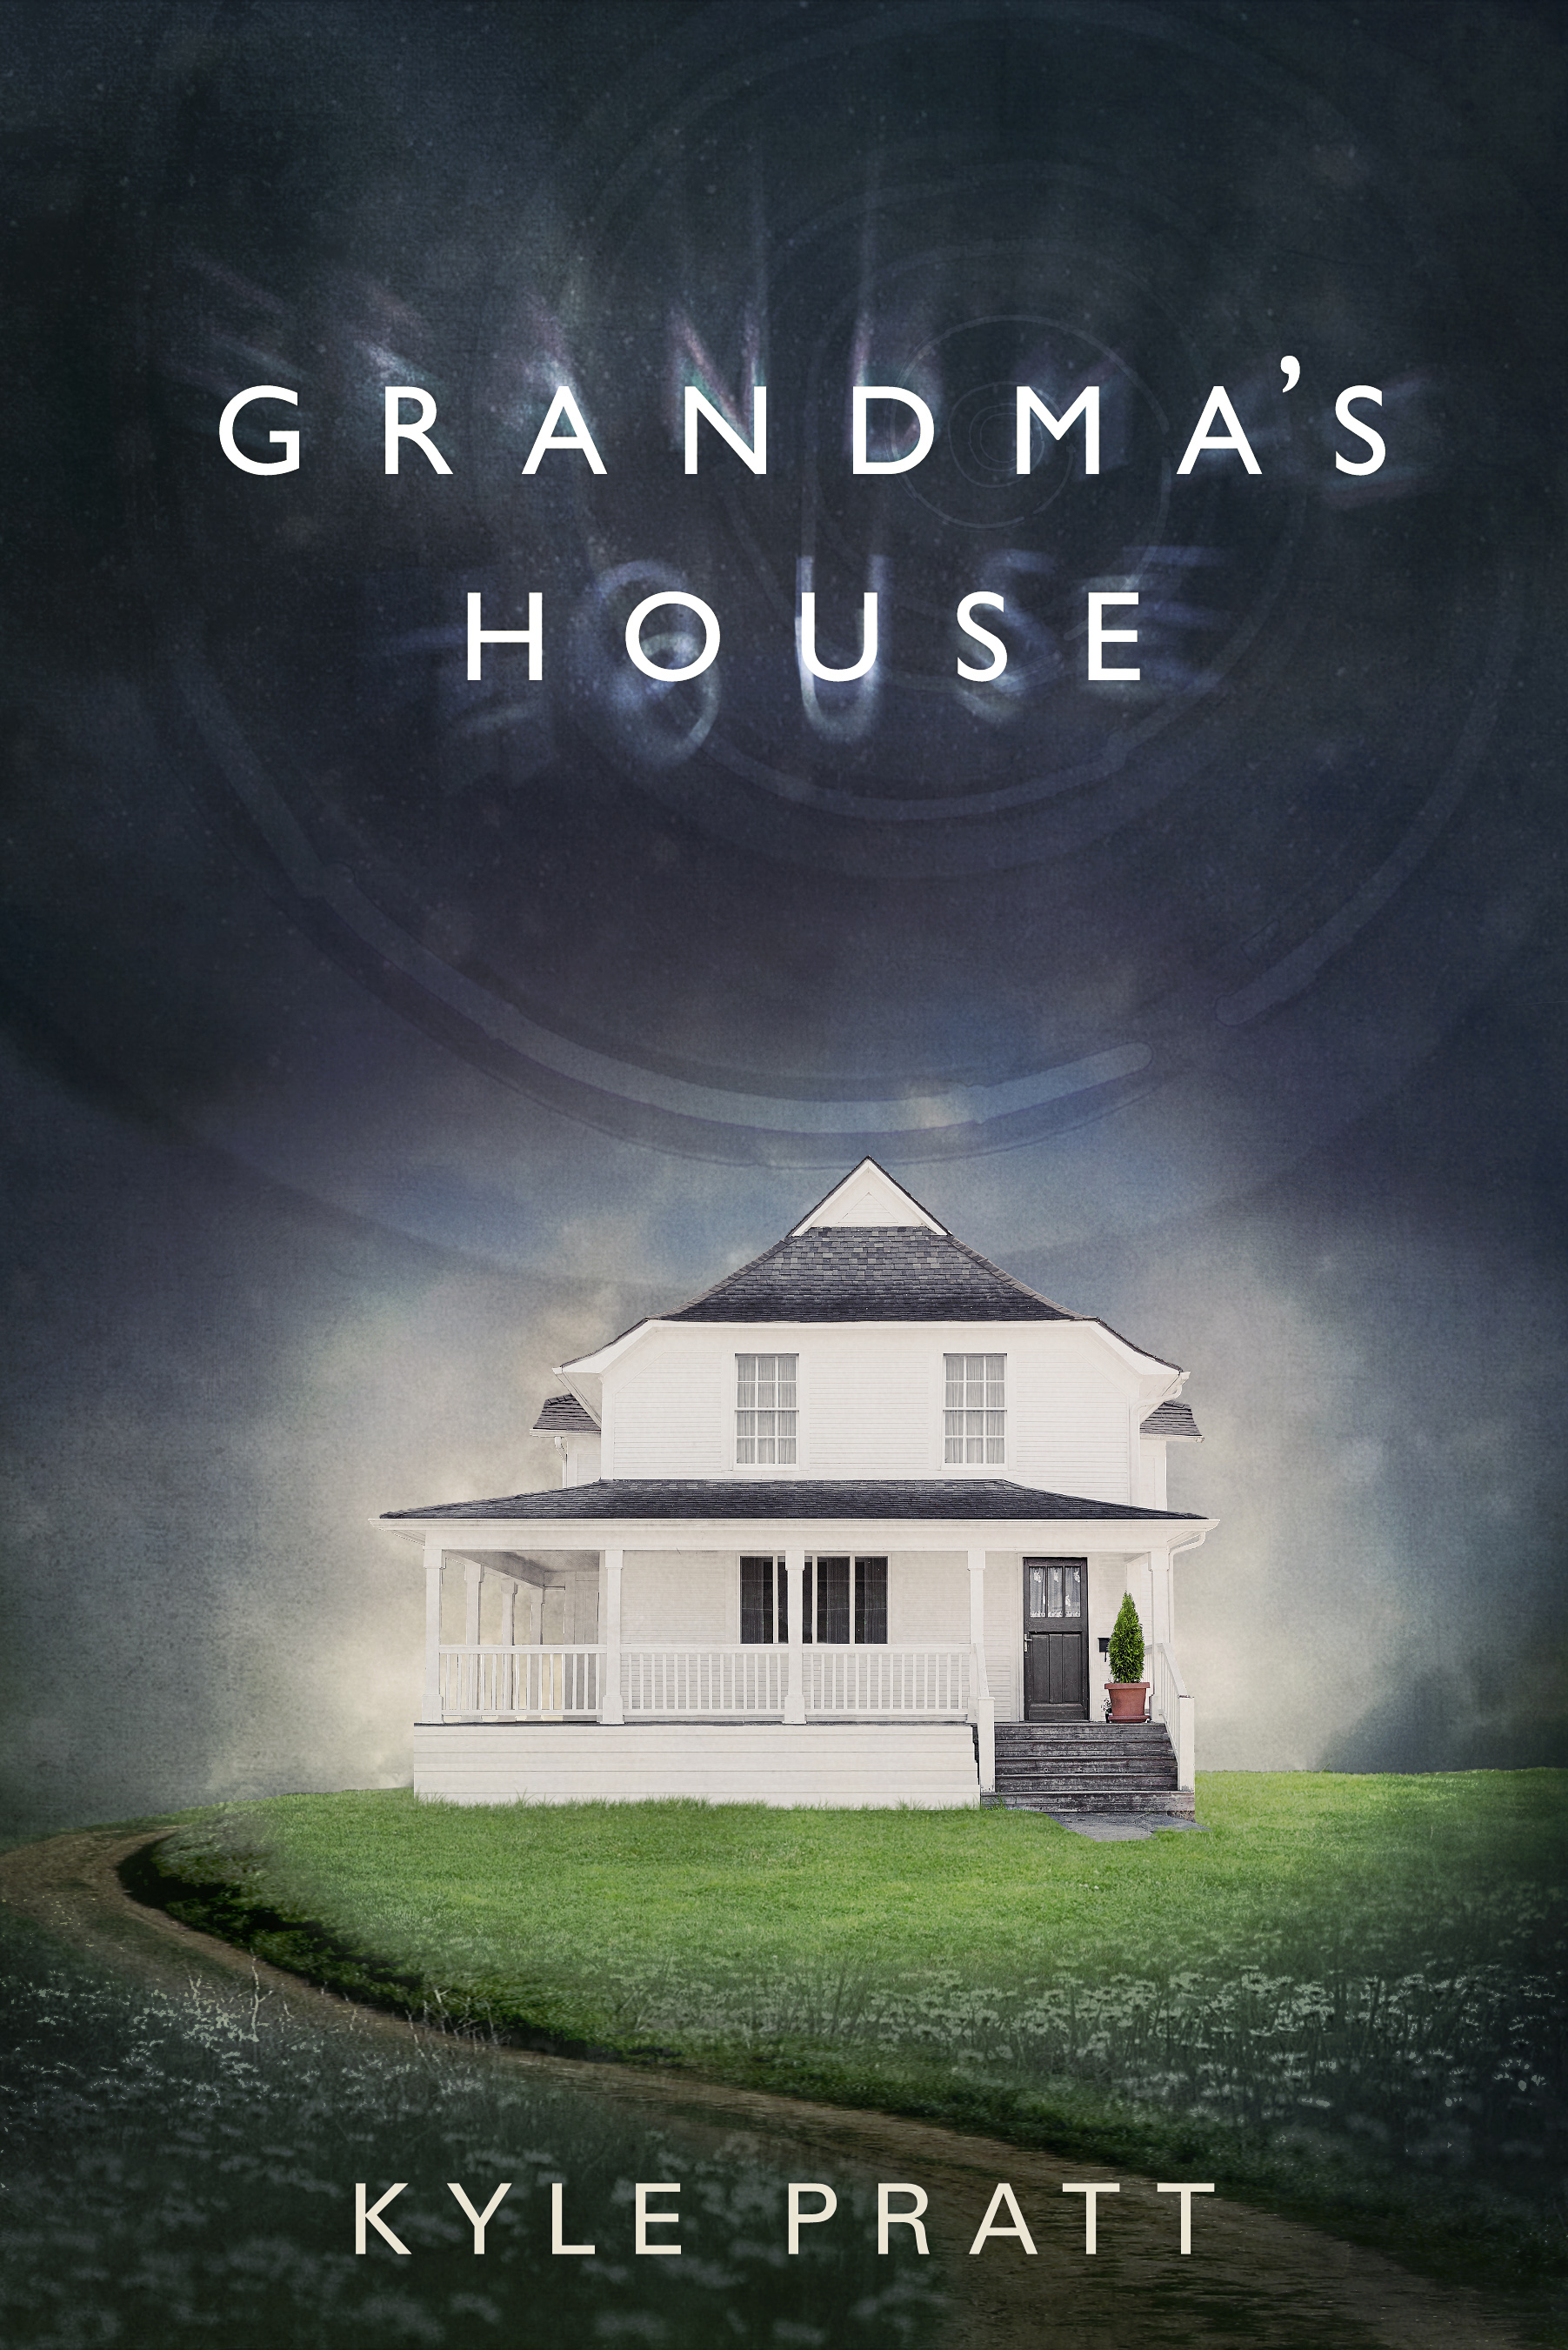 Grandma's House by Kyle Pratt